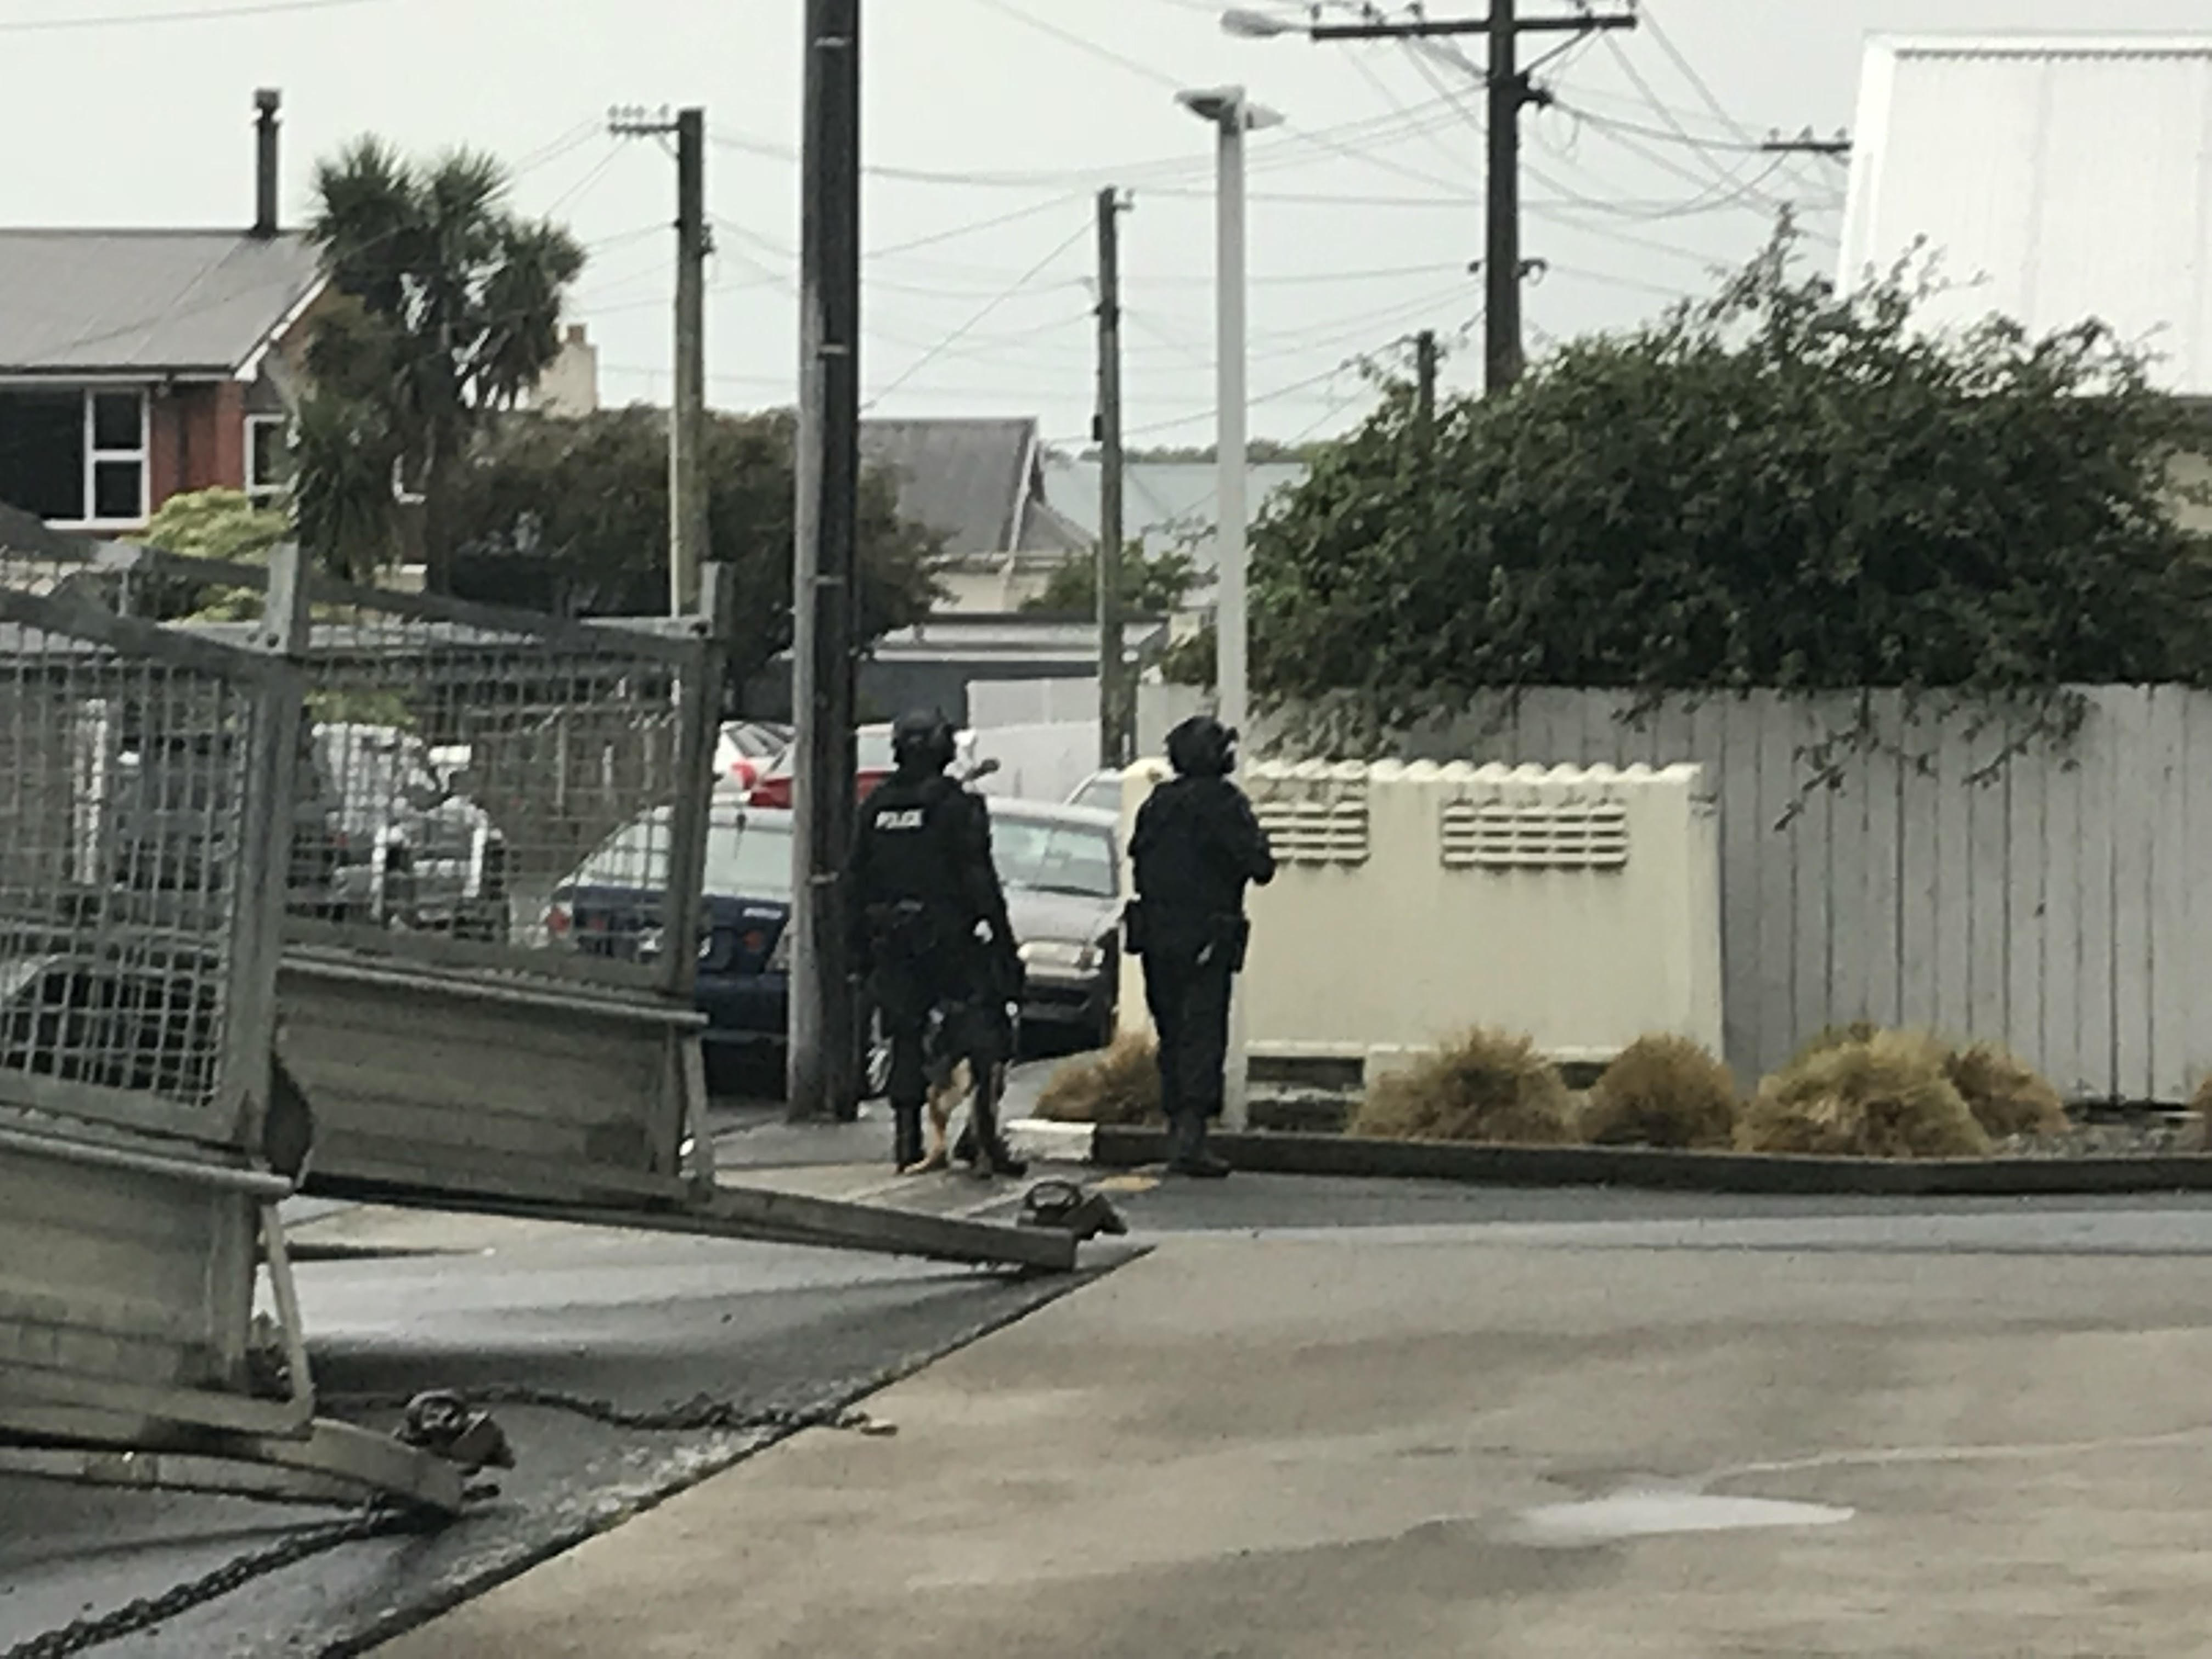 Armed police were called out in Dunedin's Forbury area this morning. Photo: Daisy Hudson